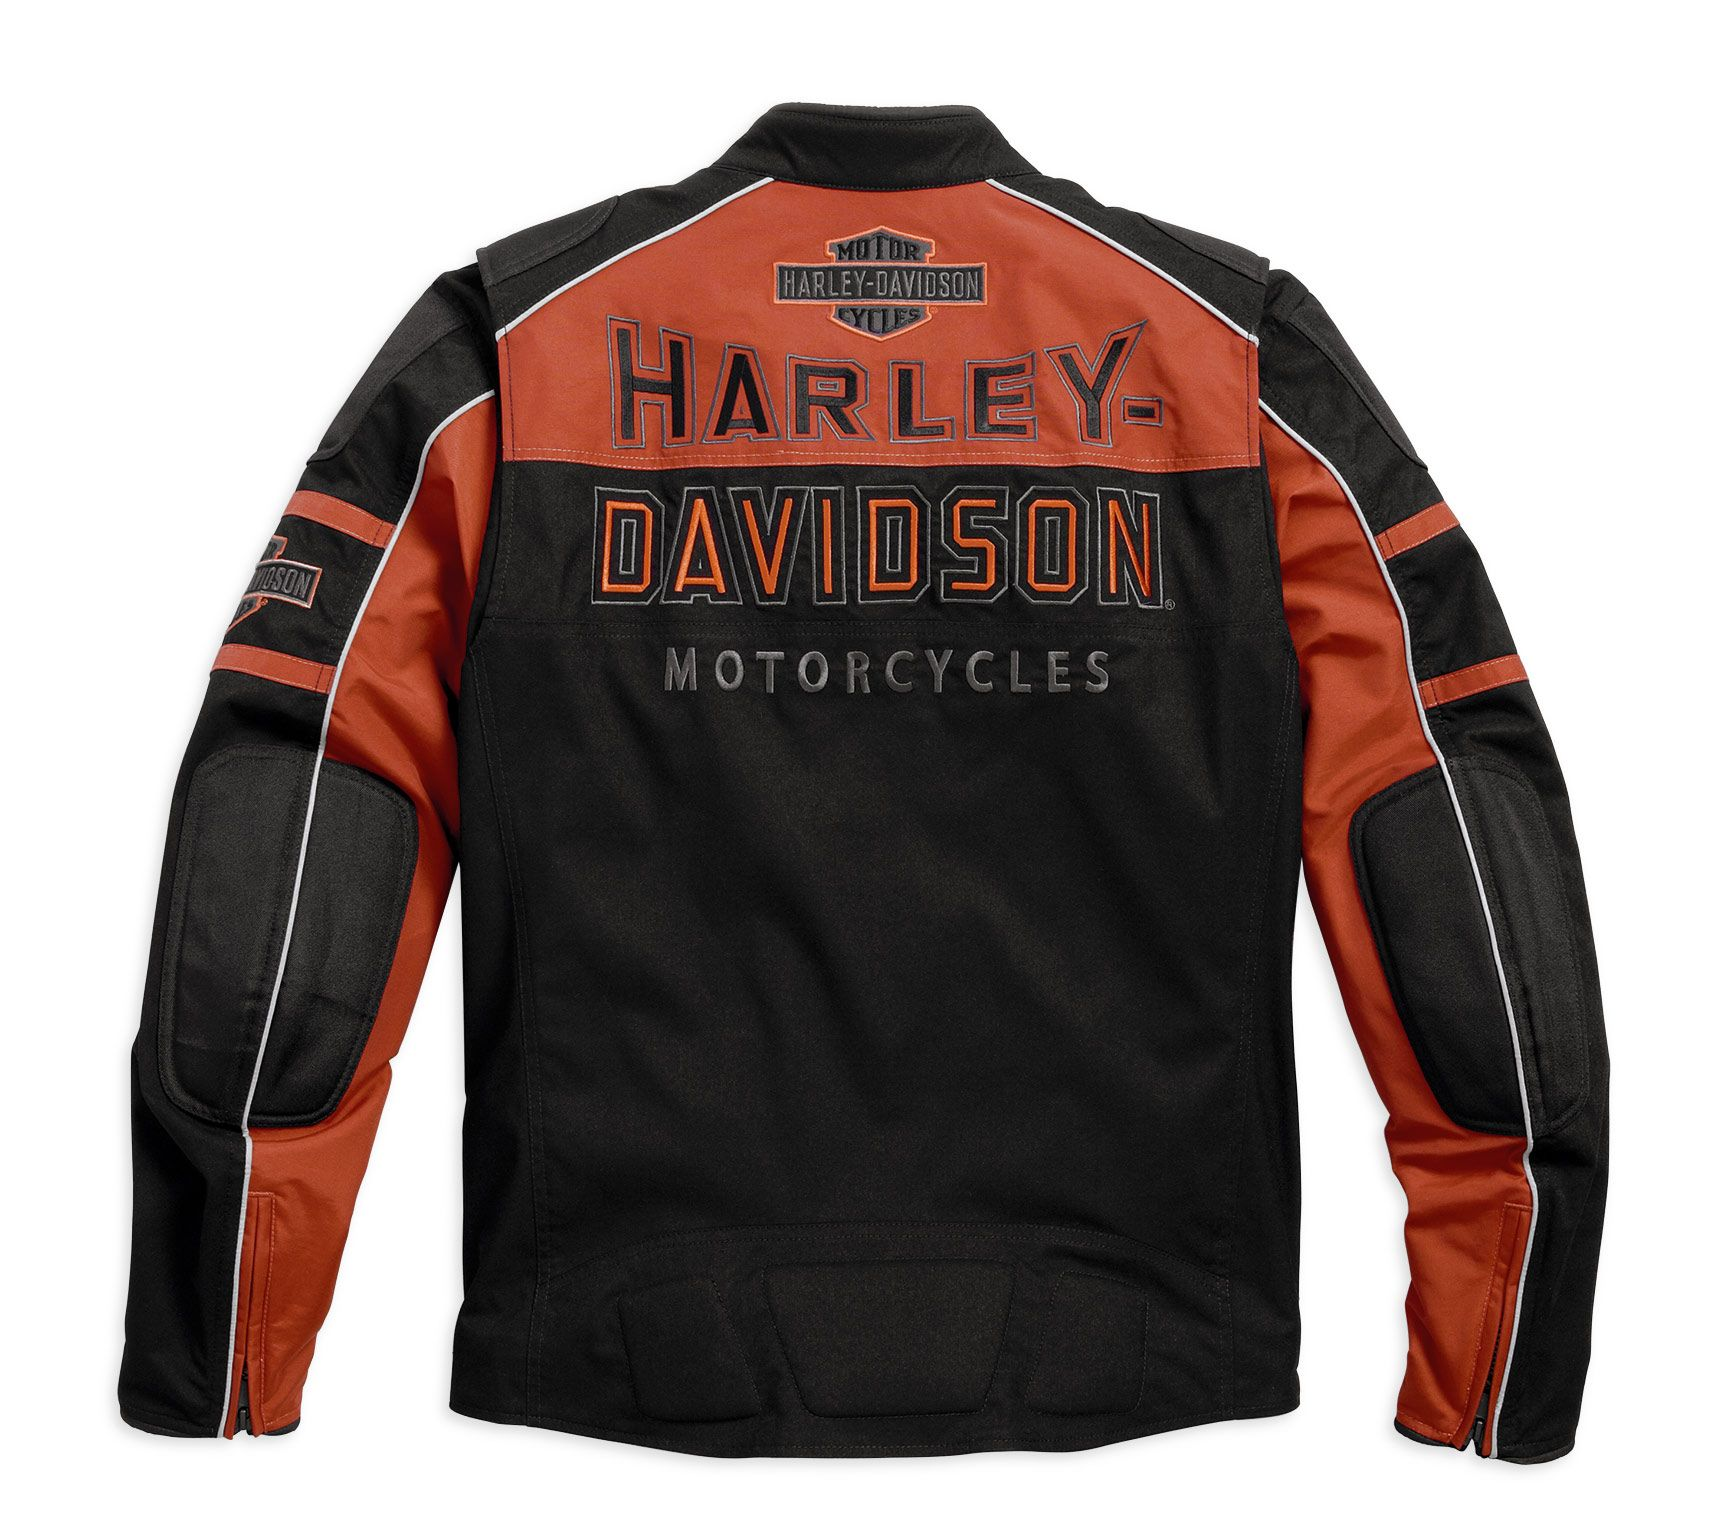 98112 16vm harley davidson jacke gastone riding im. Black Bedroom Furniture Sets. Home Design Ideas